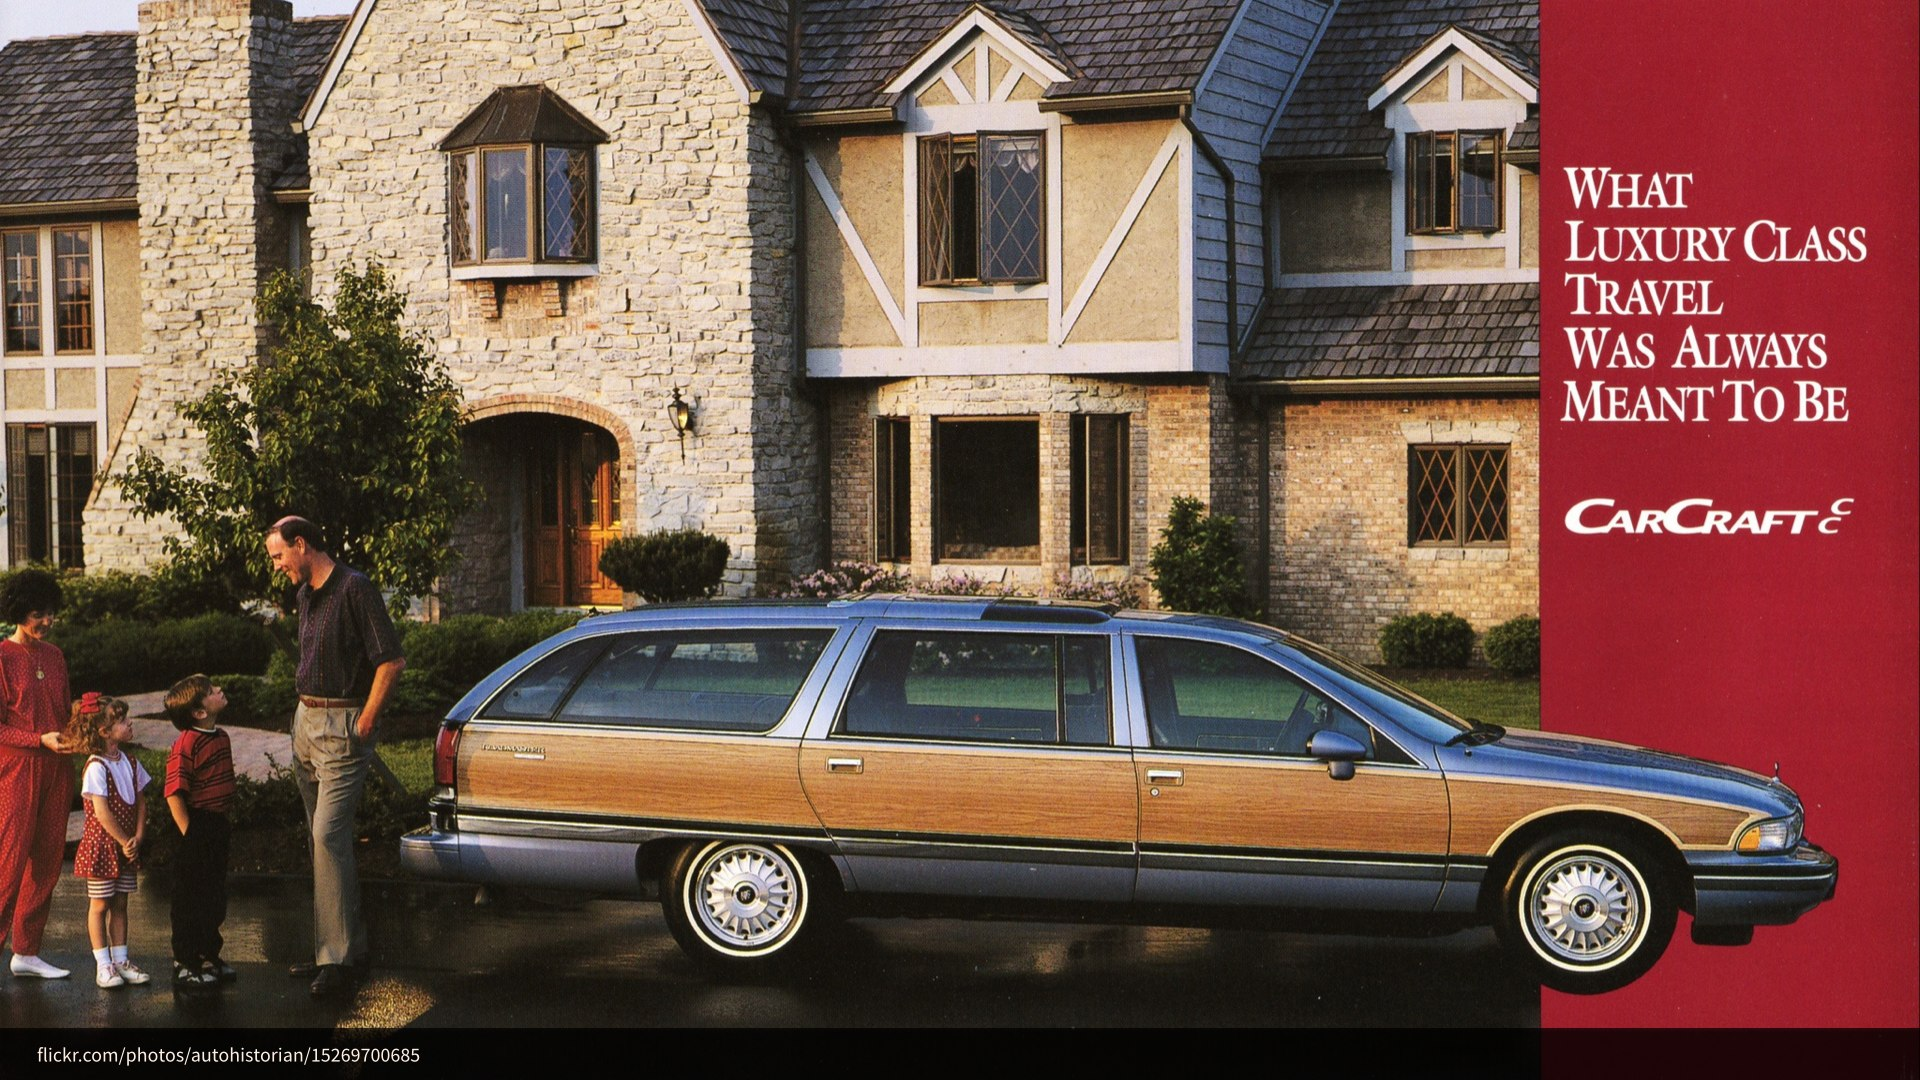 A dated advertisement for a wood-paneled station wagon